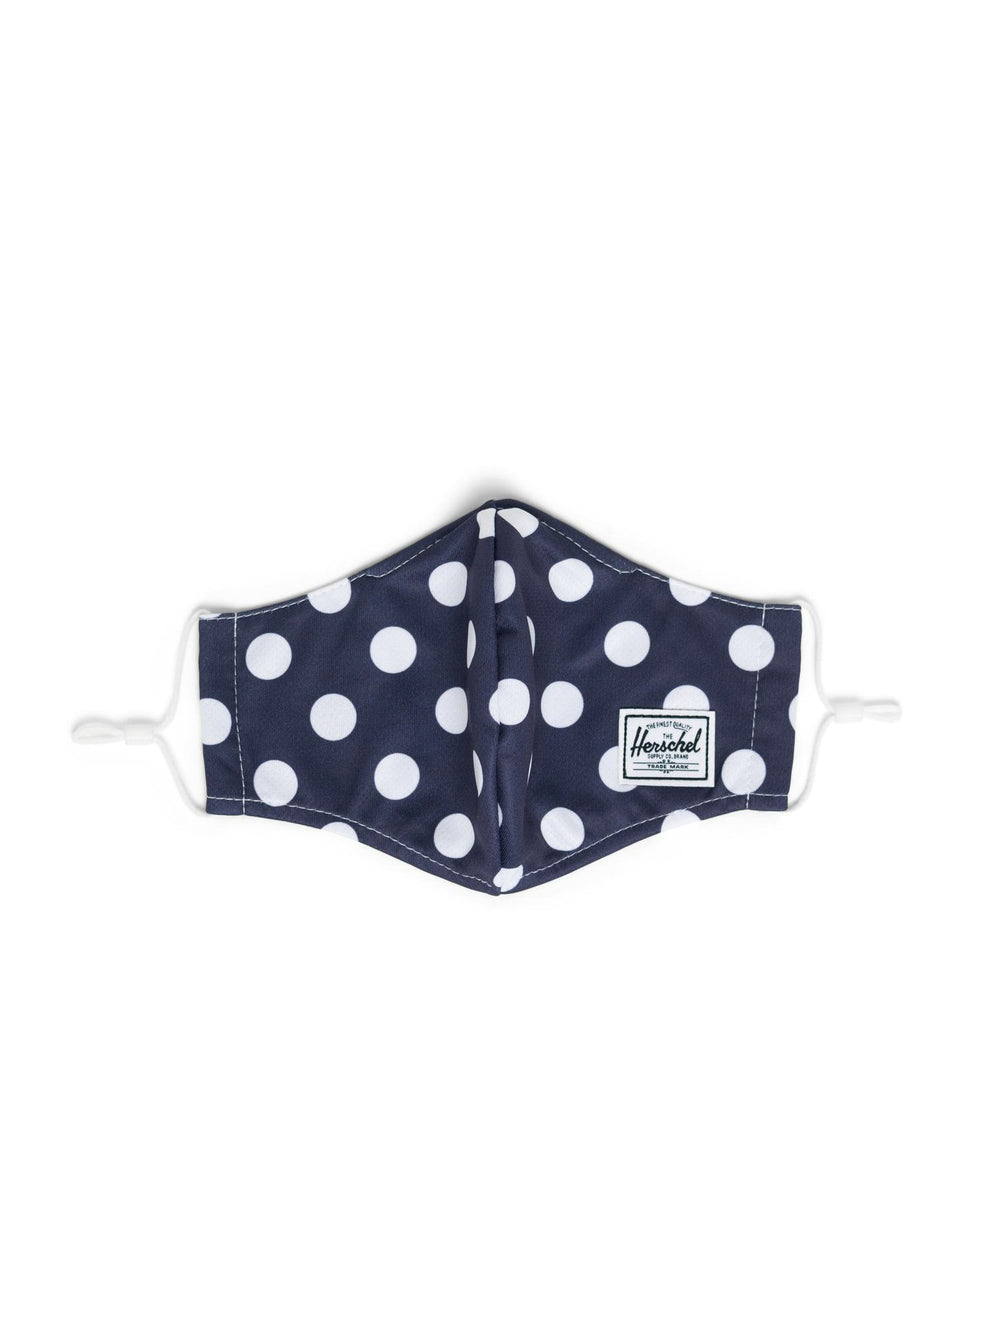 CLS FITTED MASK - POLKA DOT